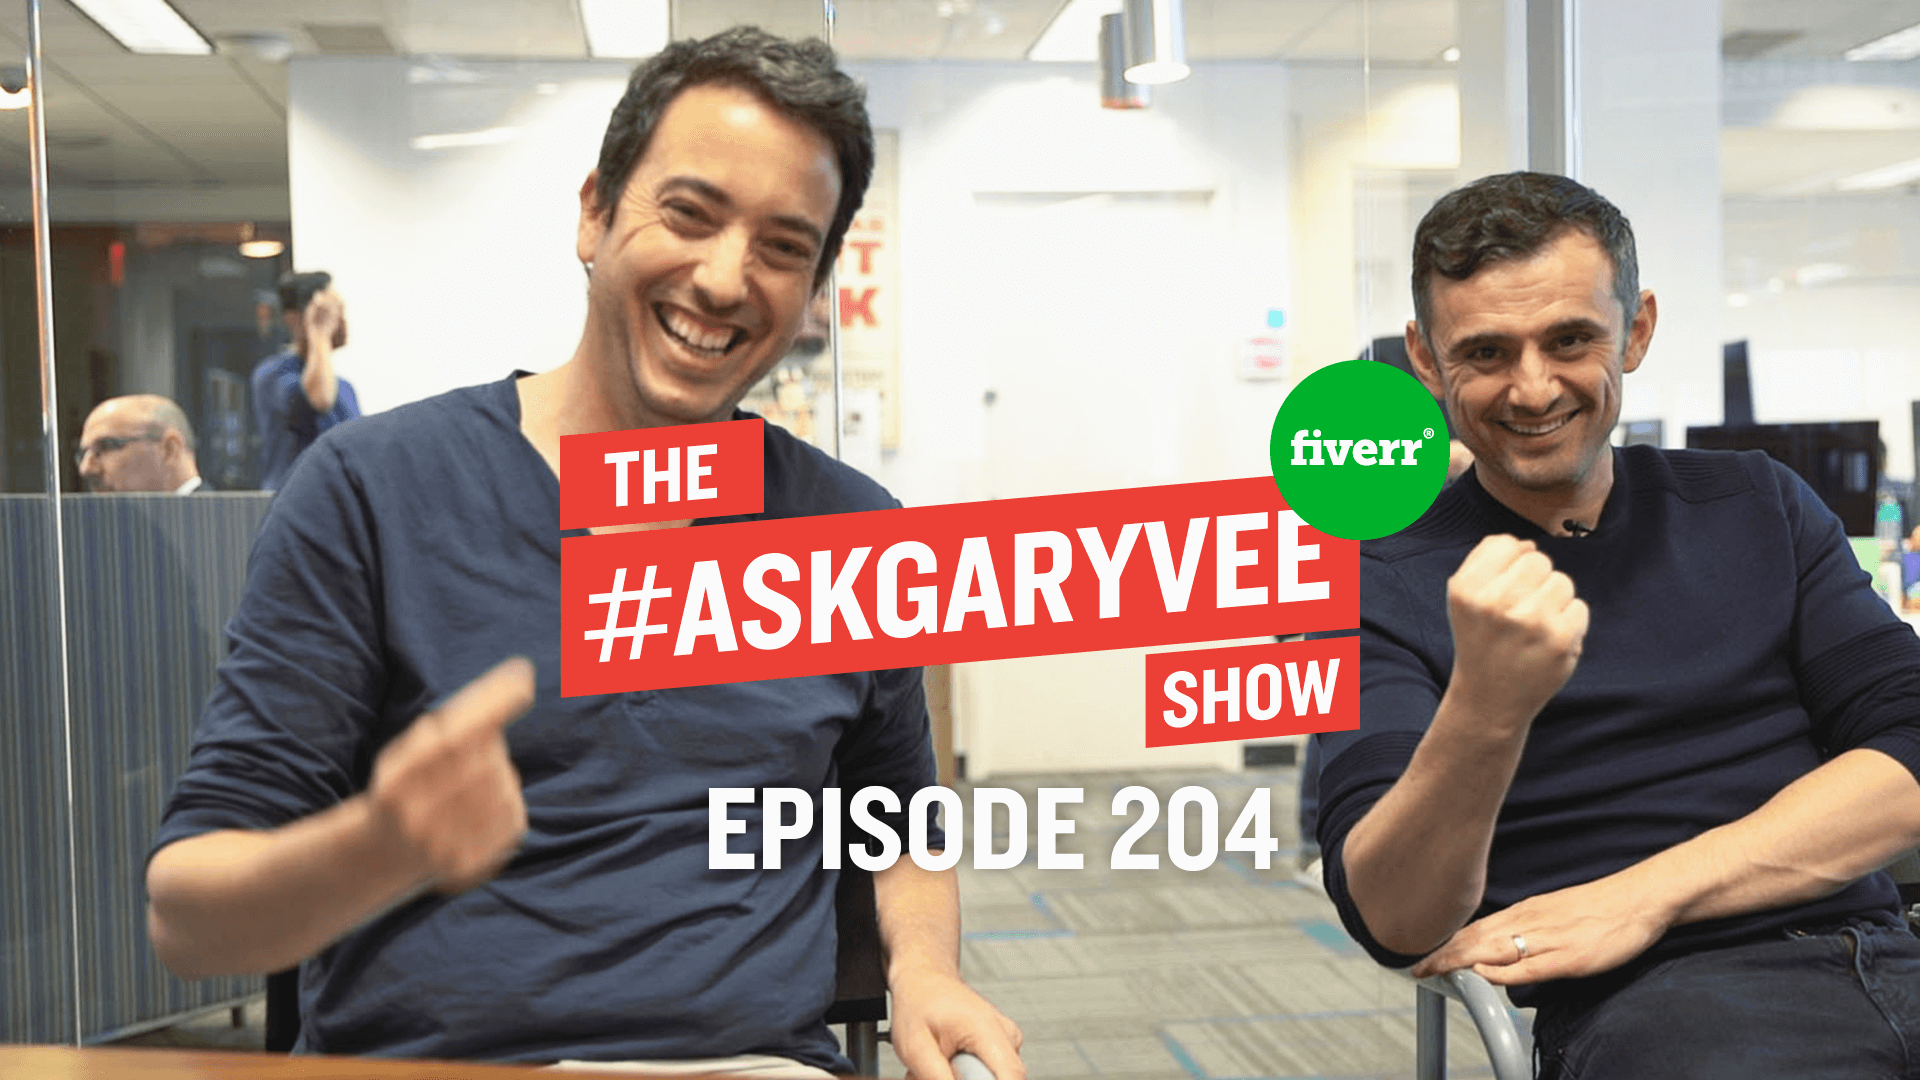 Fiverr joins Gary in Episode 204 of The #AskGaryVee Show!